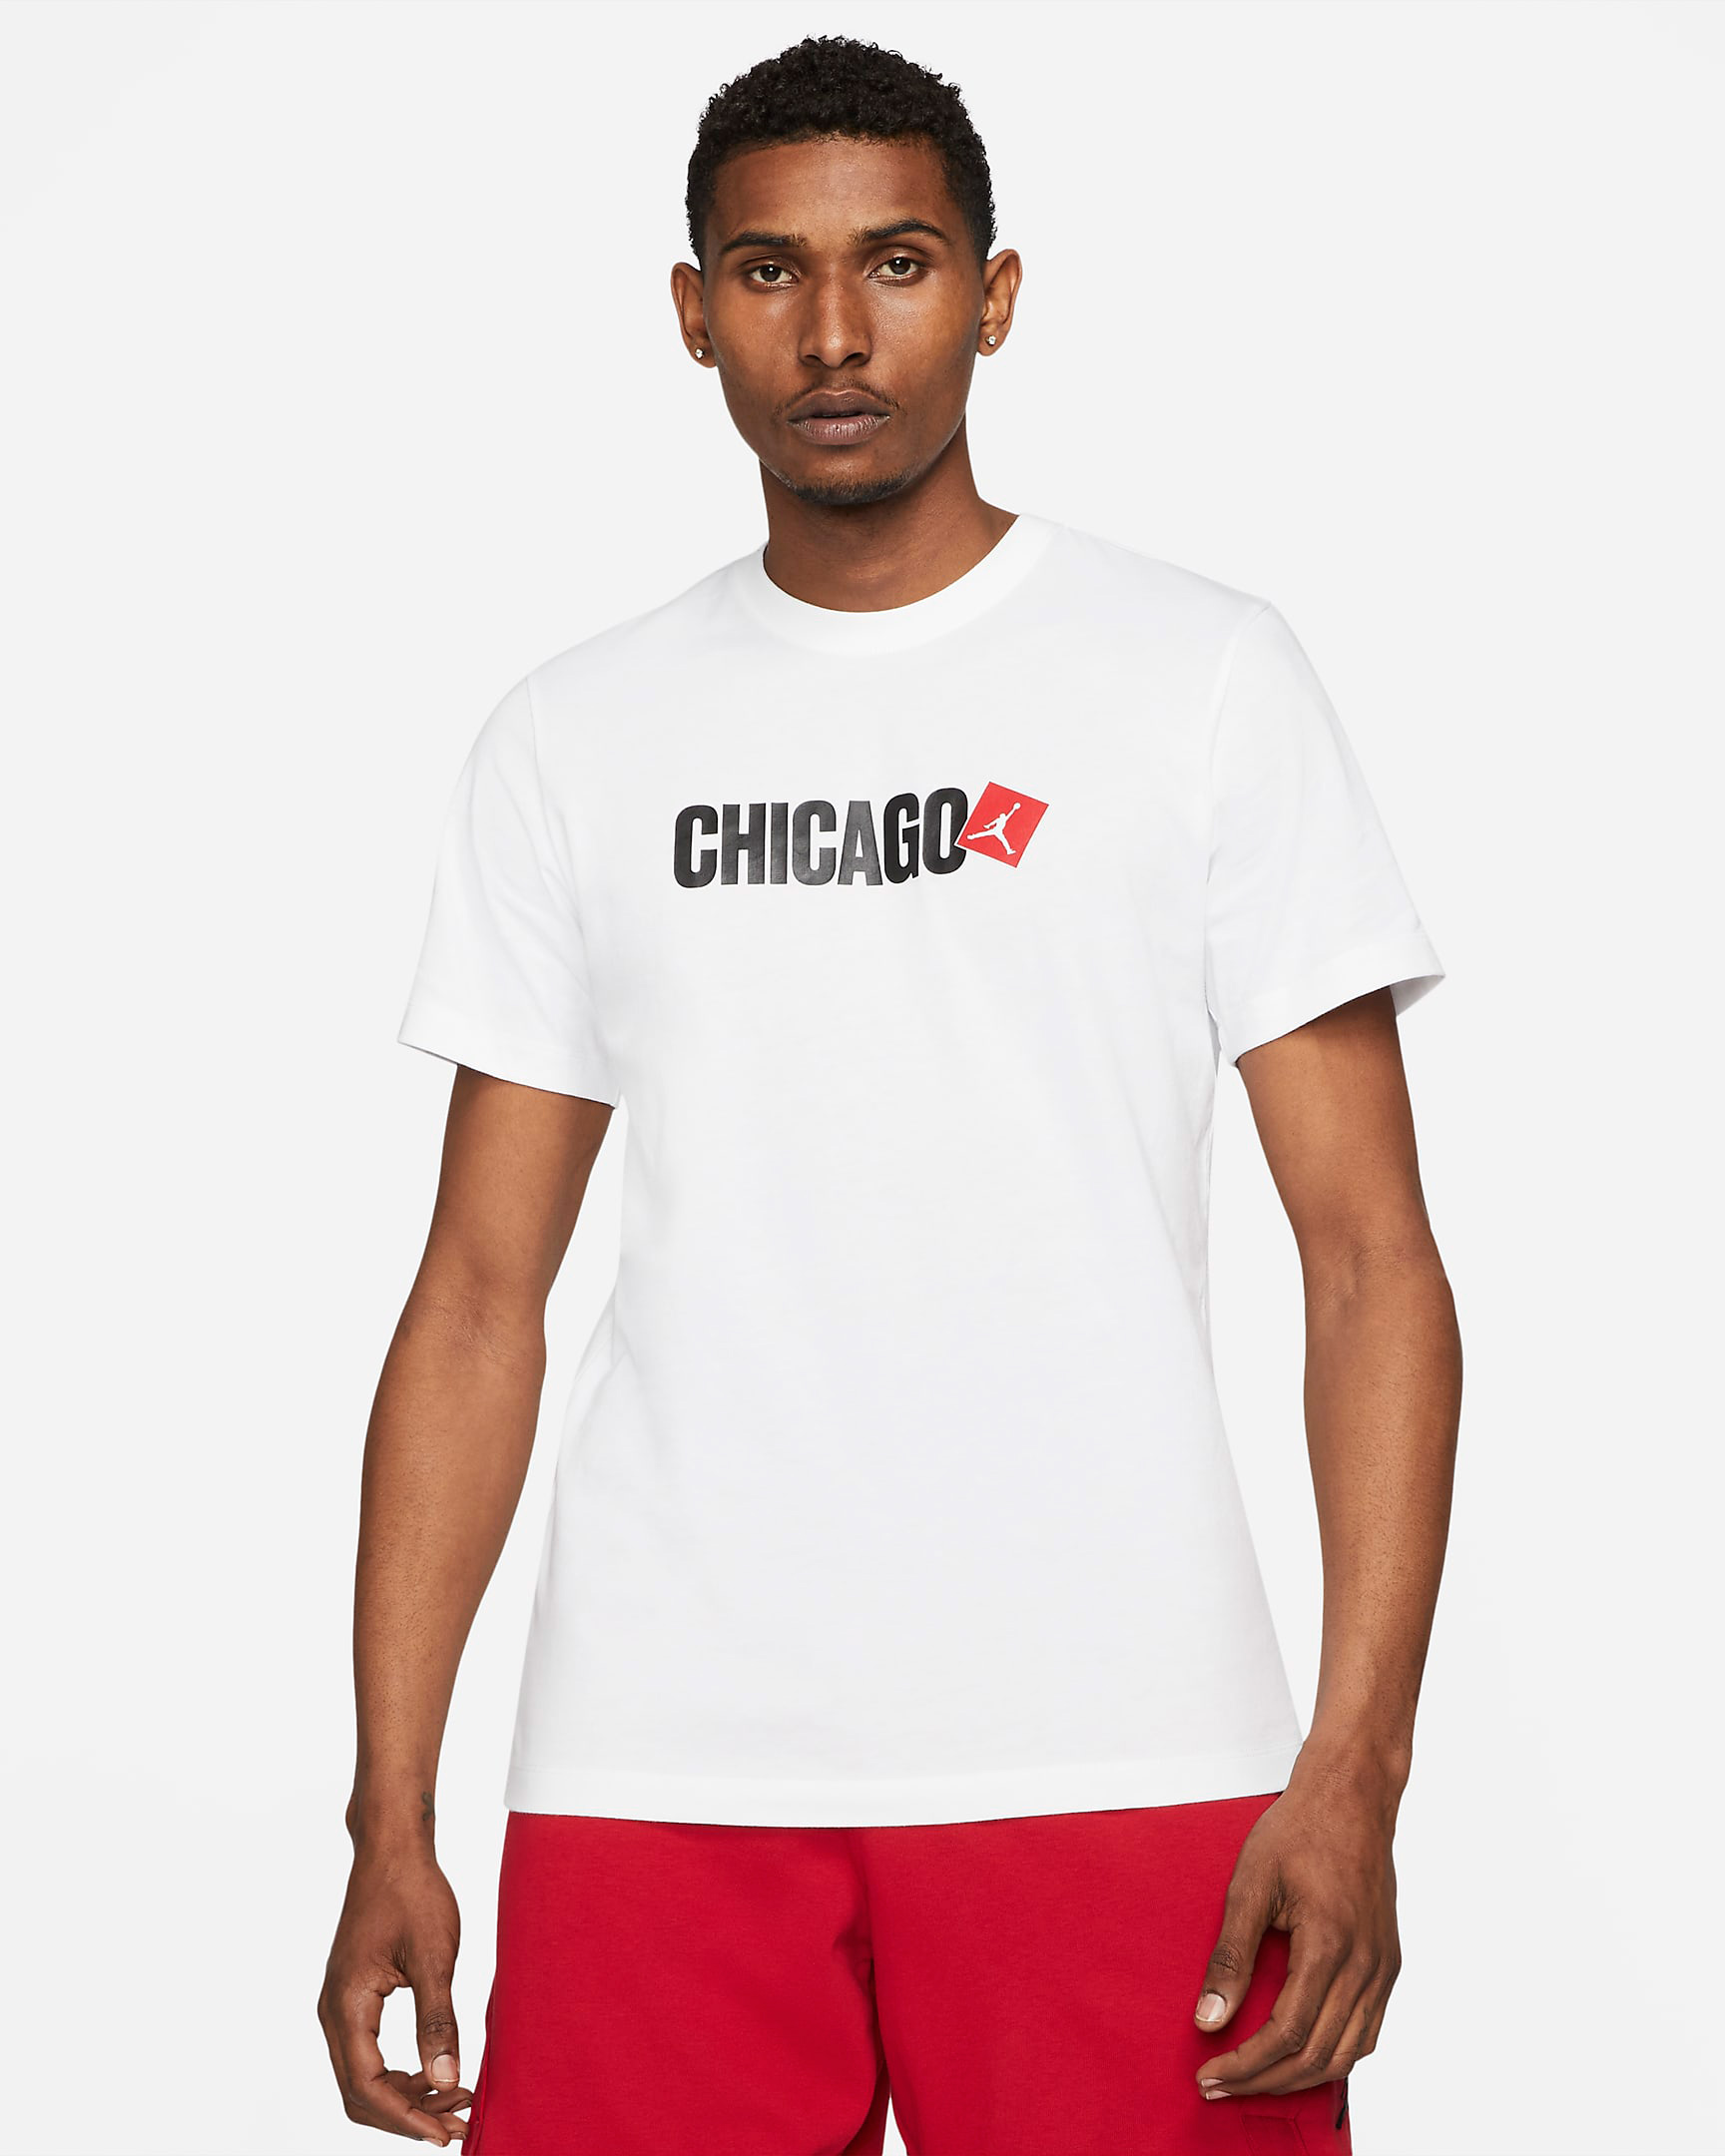 jordan-chicago-shirt-white-2